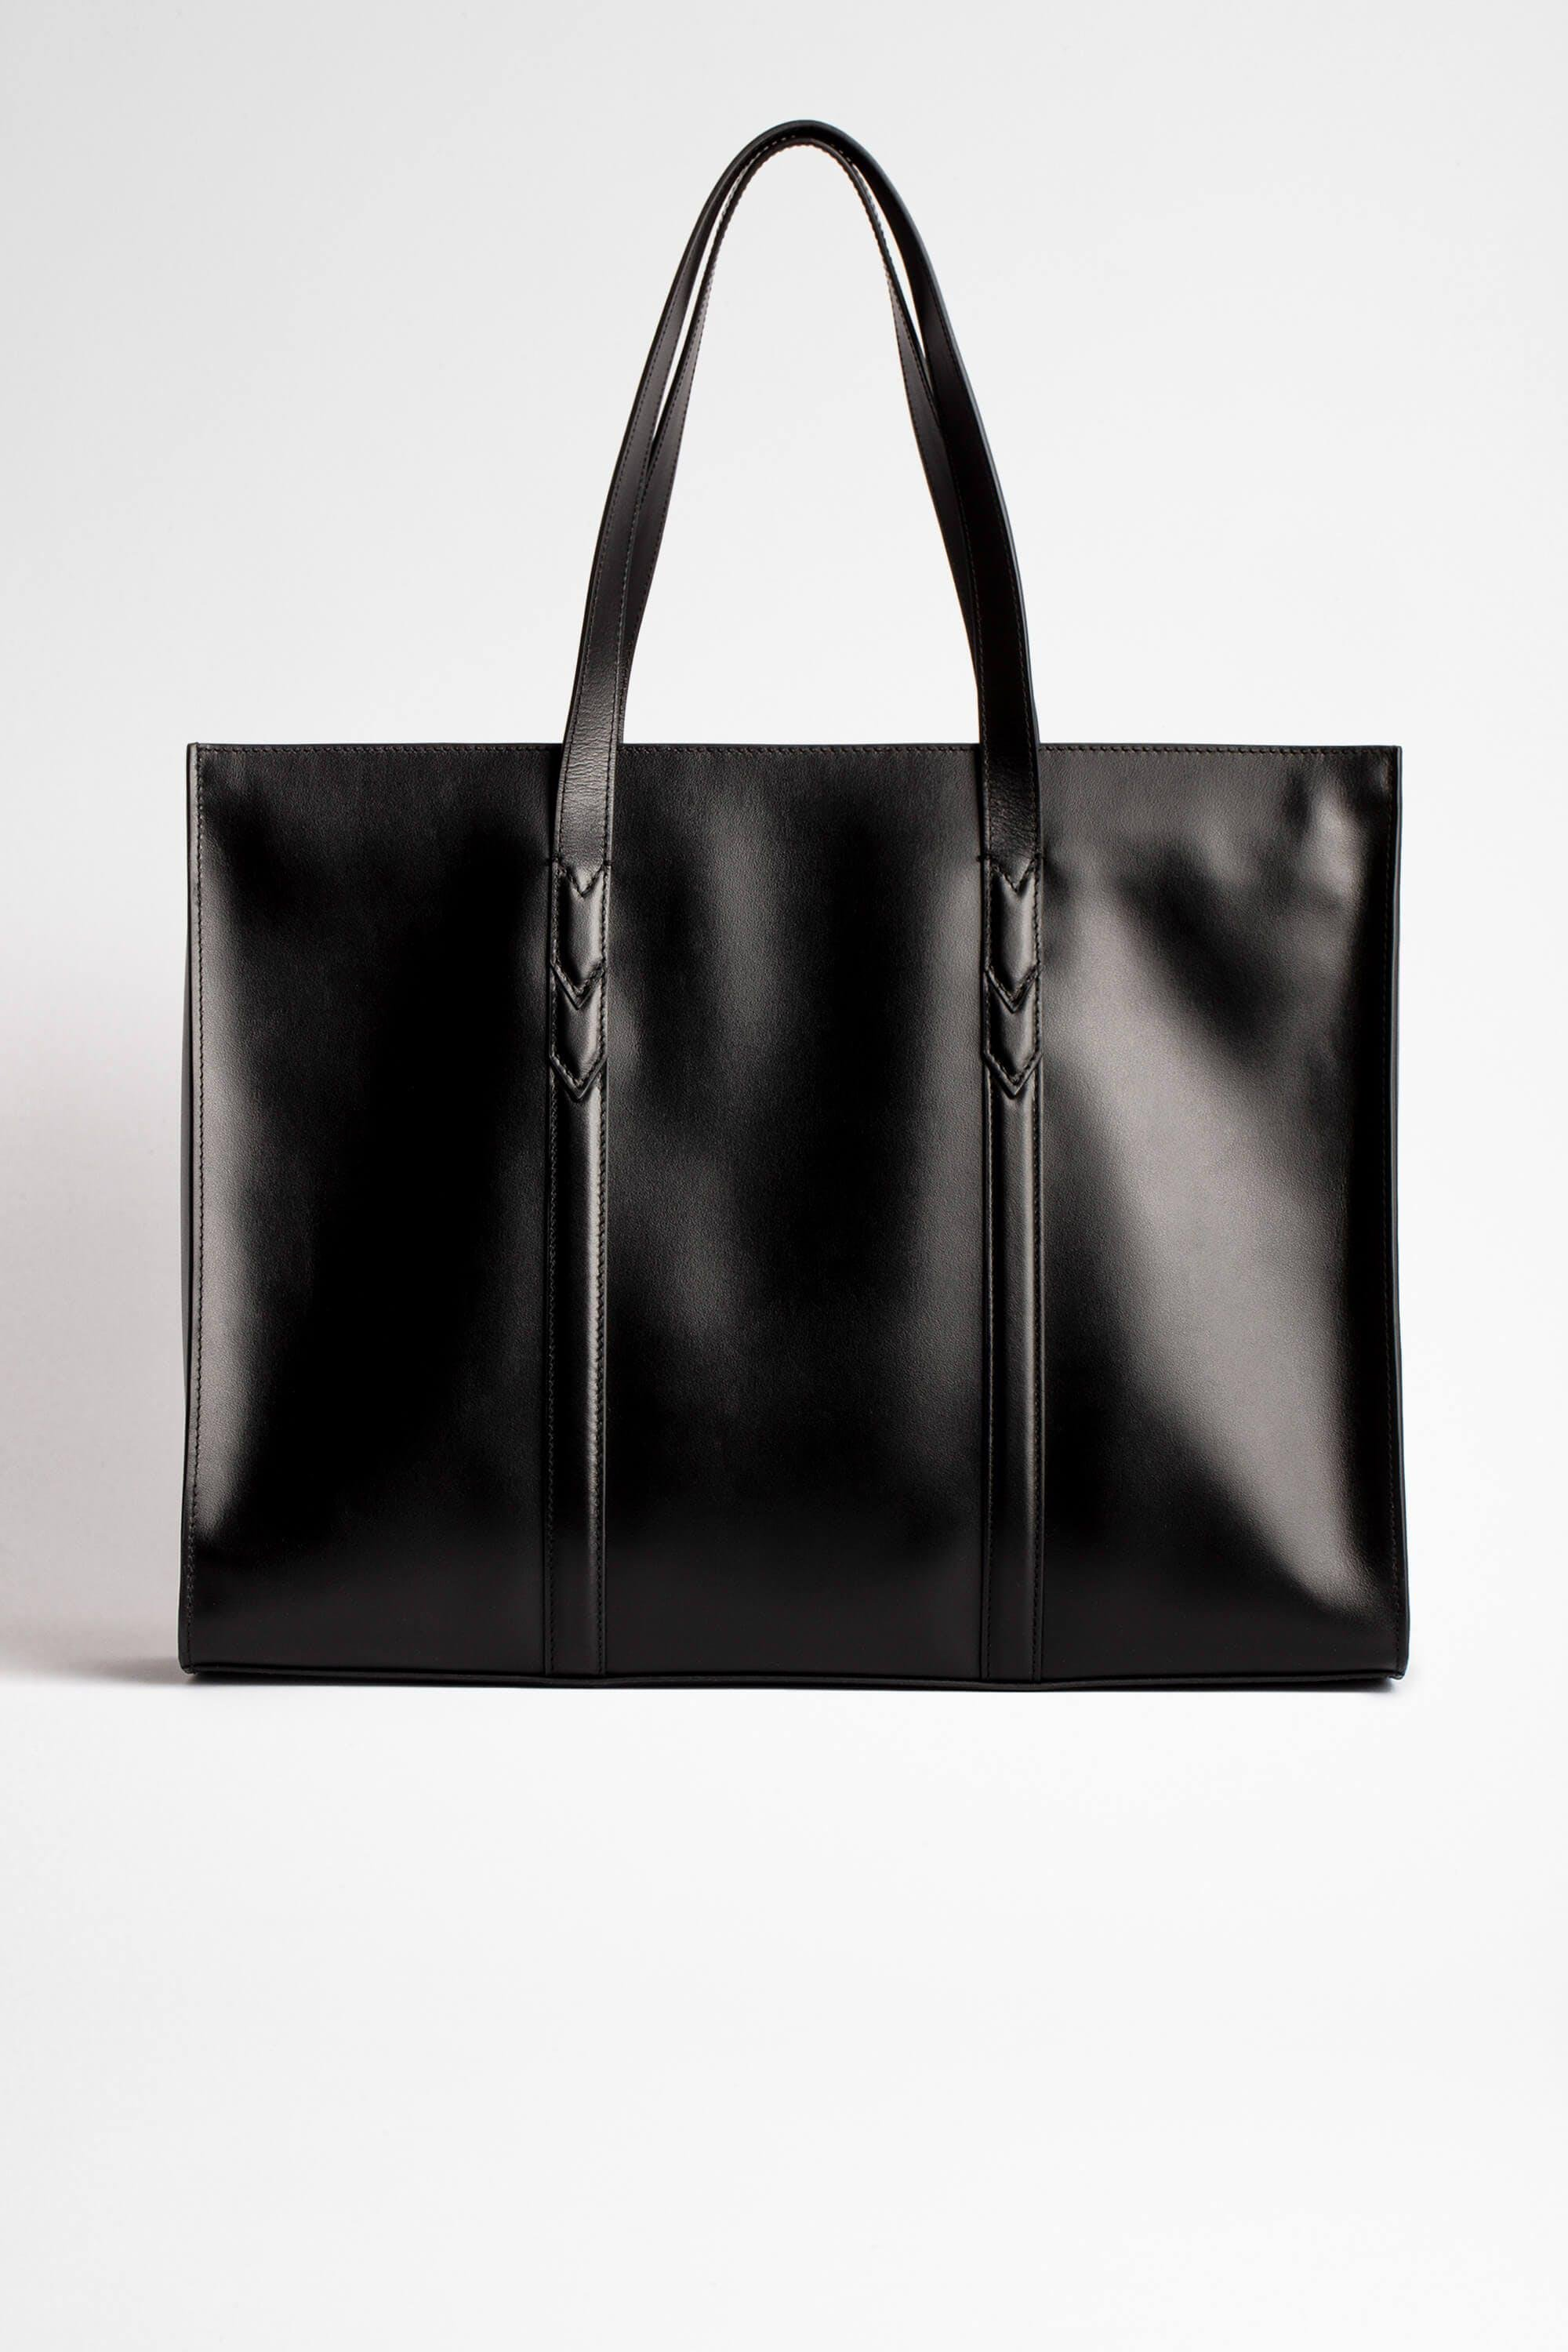 ZV Initiale Le Tote Bag 1